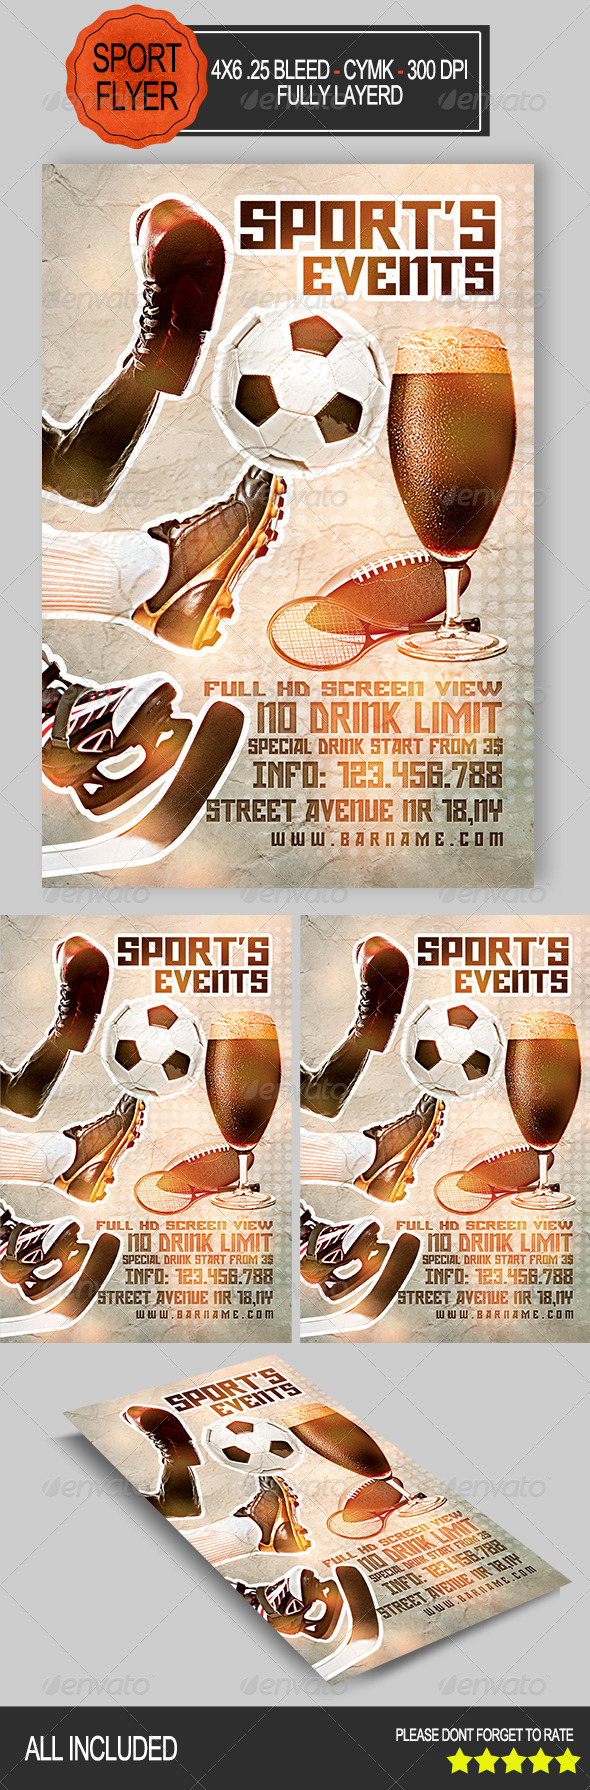 GraphicRiver Sport Events Flyer 8411783